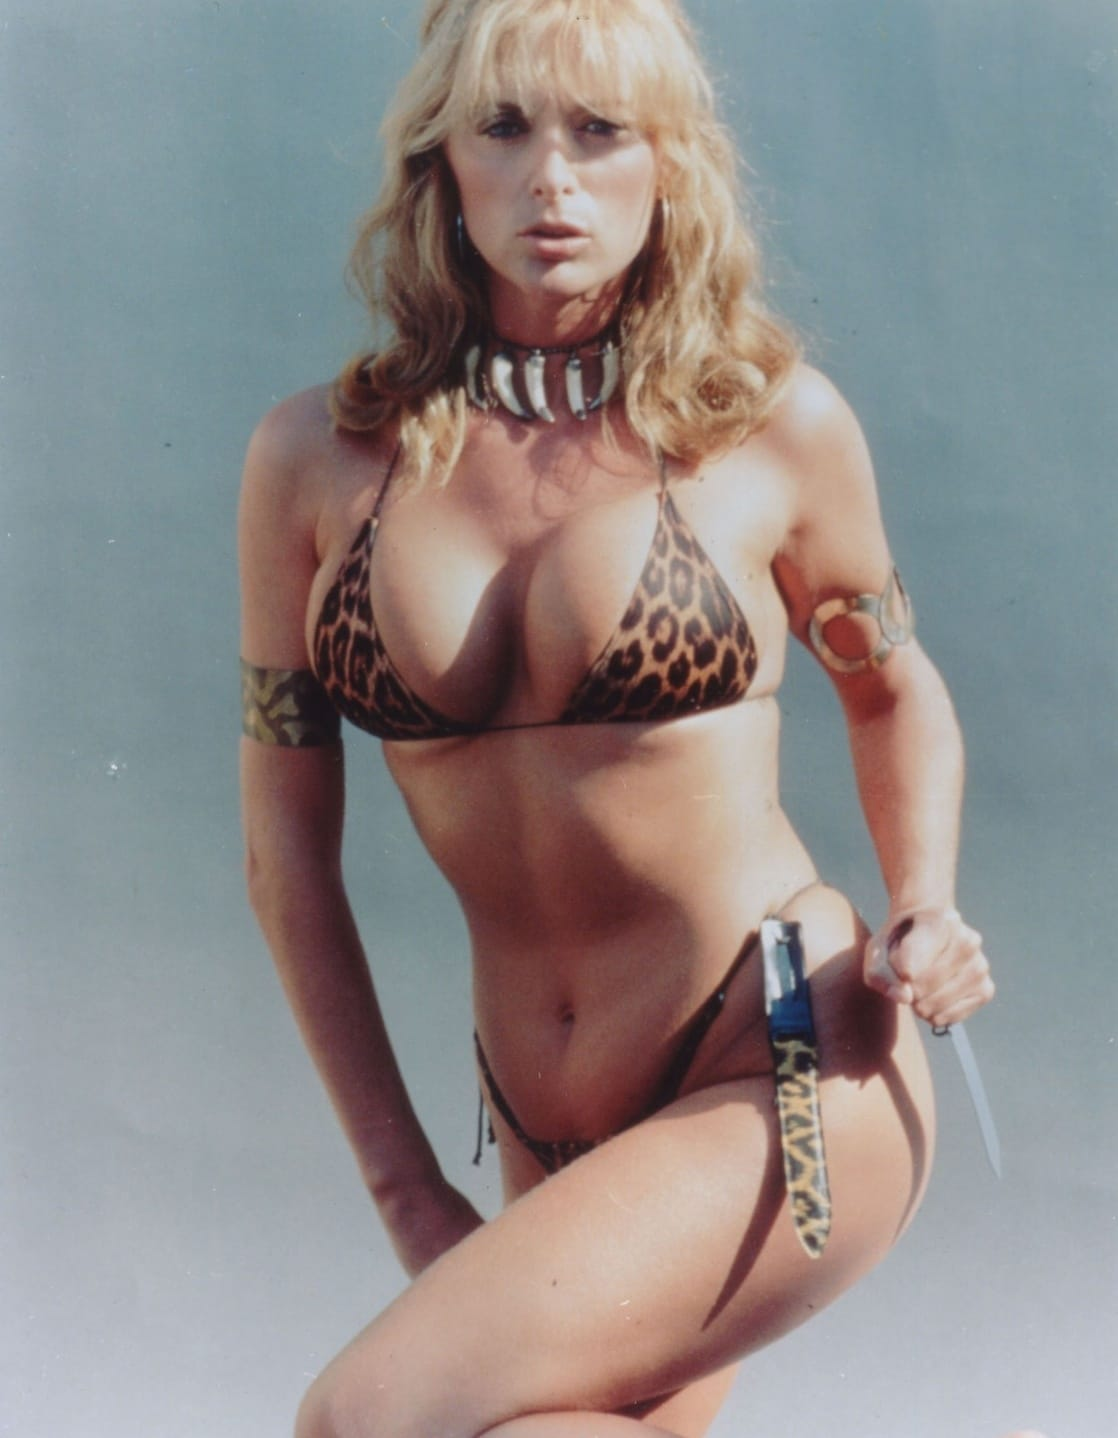 Caroline Trentini 2005-2006, 2009,Corinne Cole Erotic videos Ginger Rogers,Taoying Fu 4 Paralympic medals in powerlifting